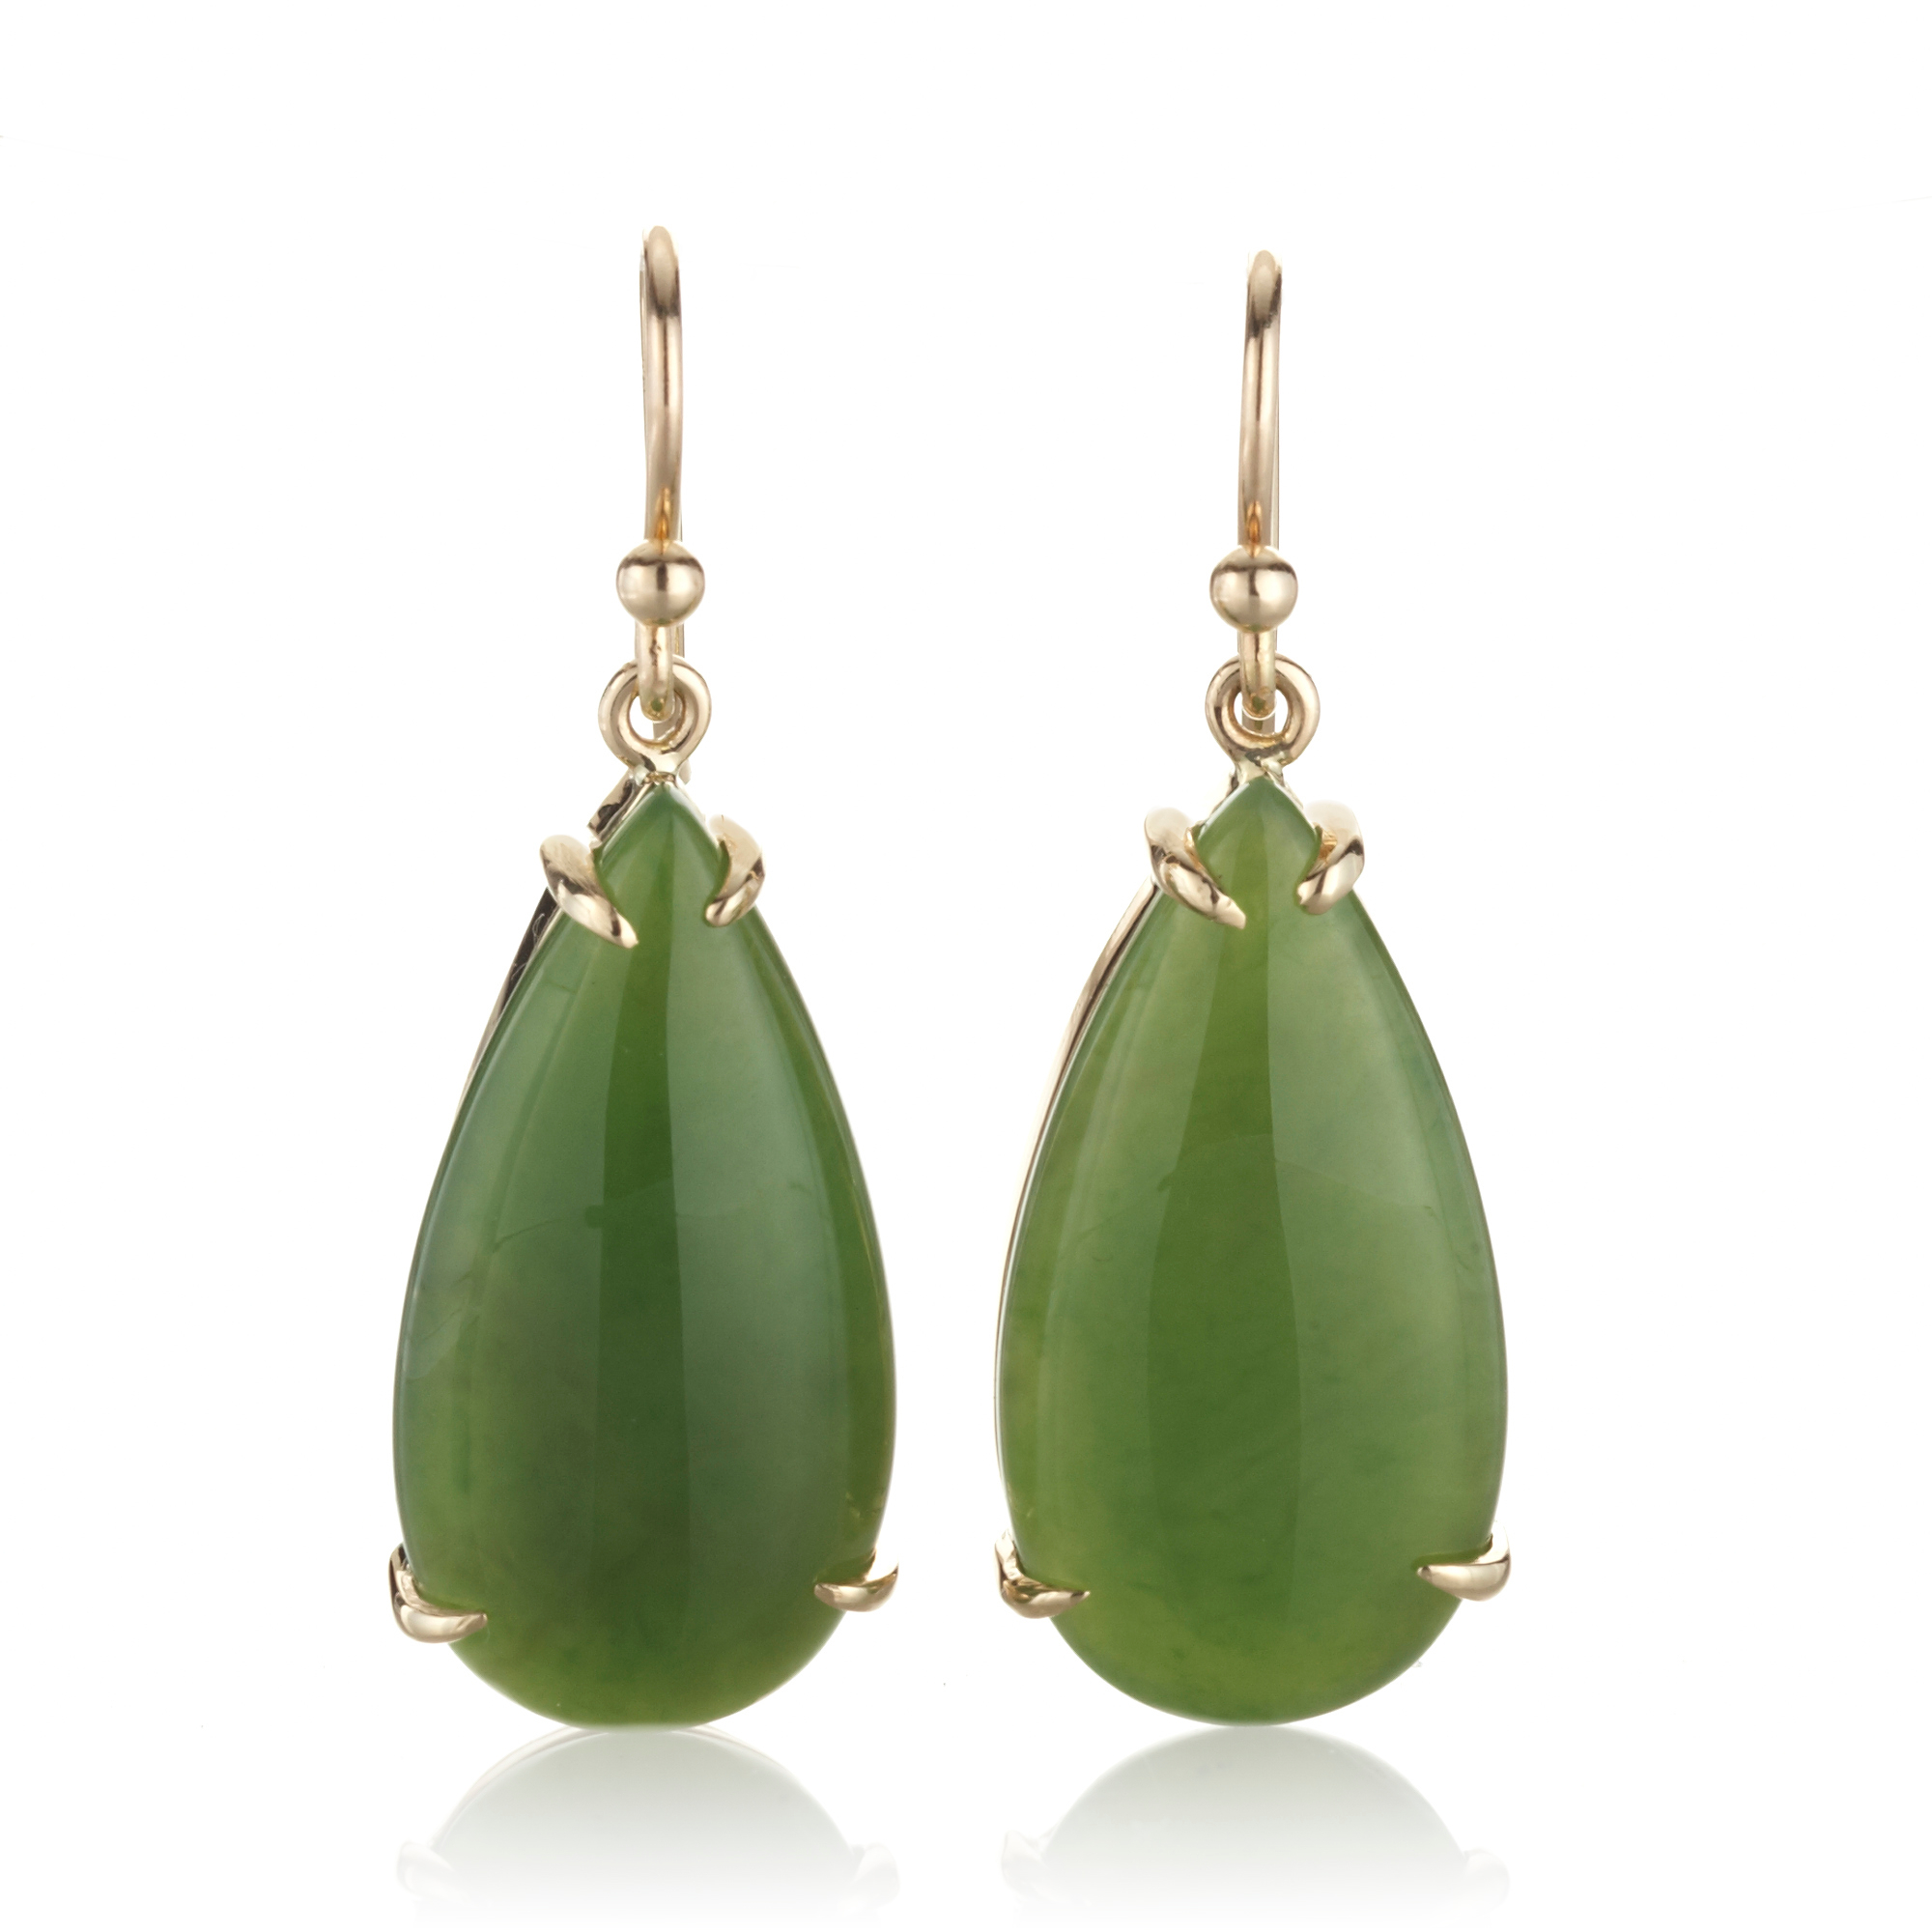 Gump's Green Nephrite Pear Drop Earrings